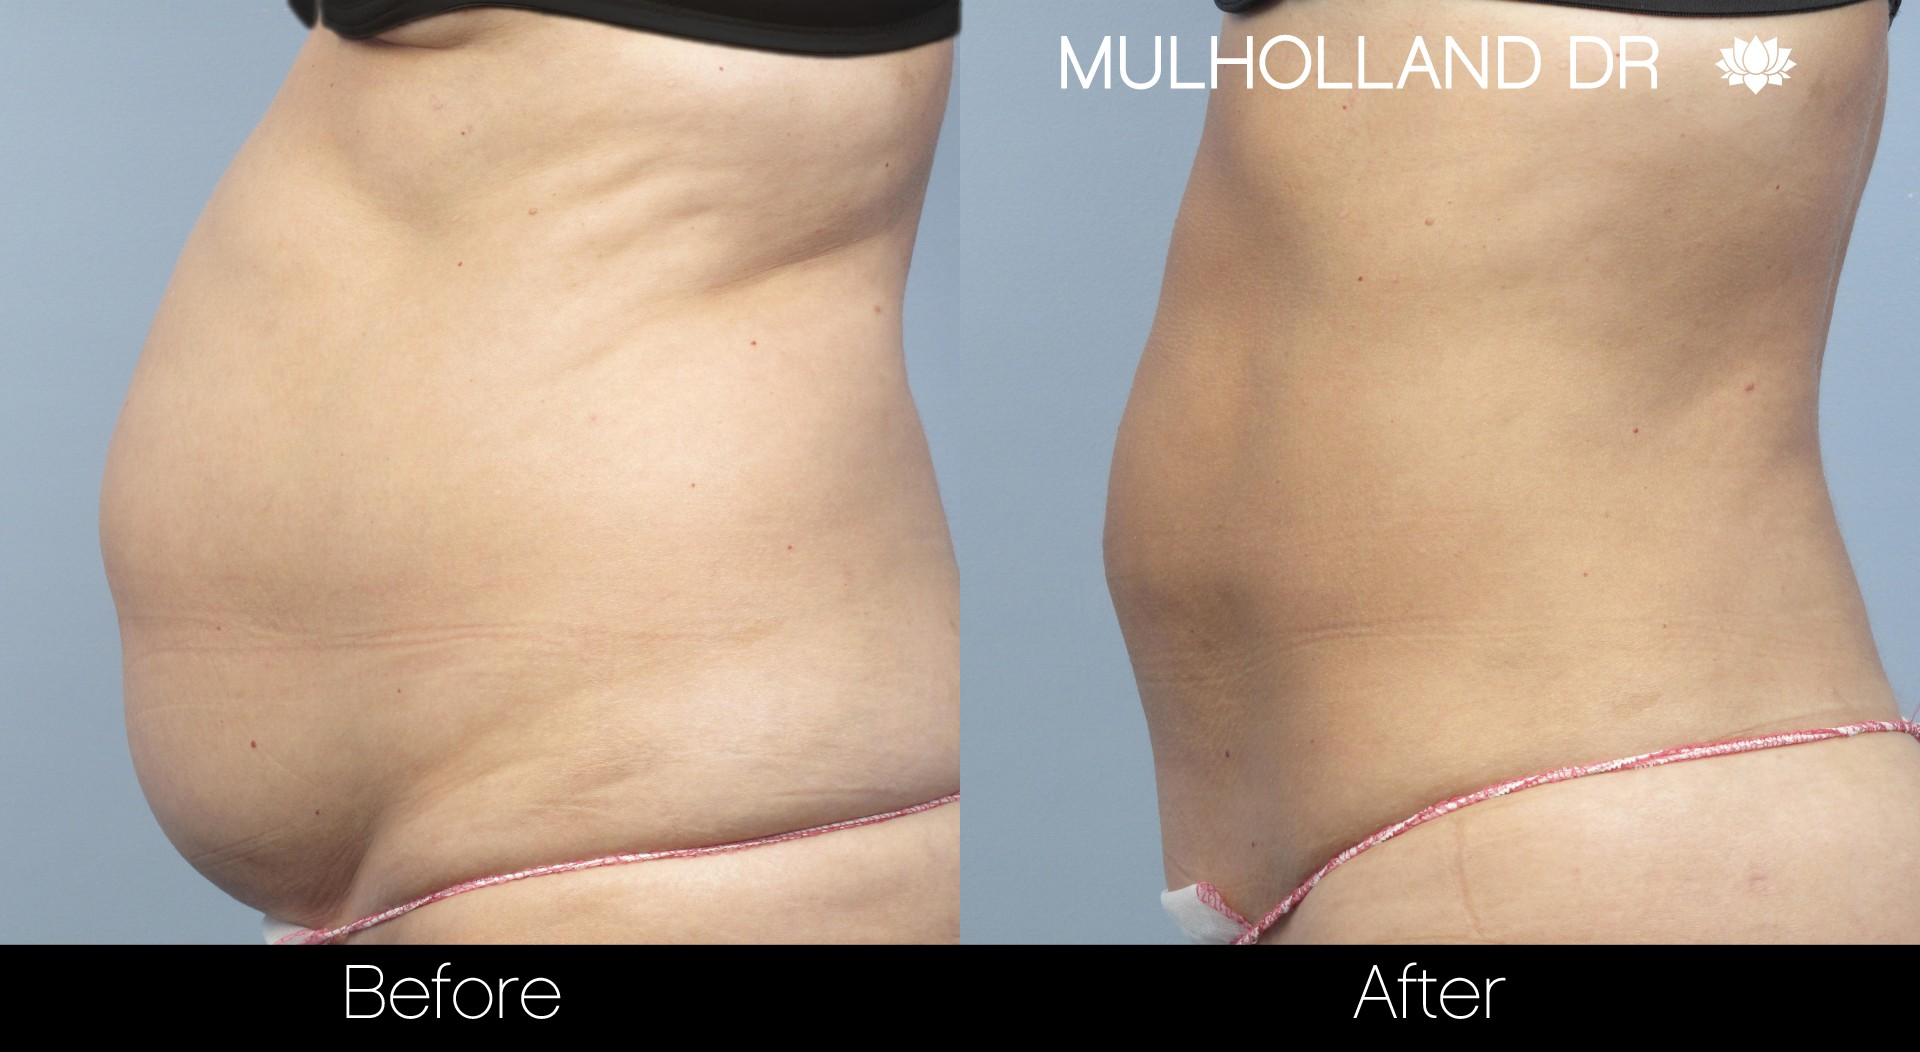 Liposuction - Before and After Gallery – Photo 10